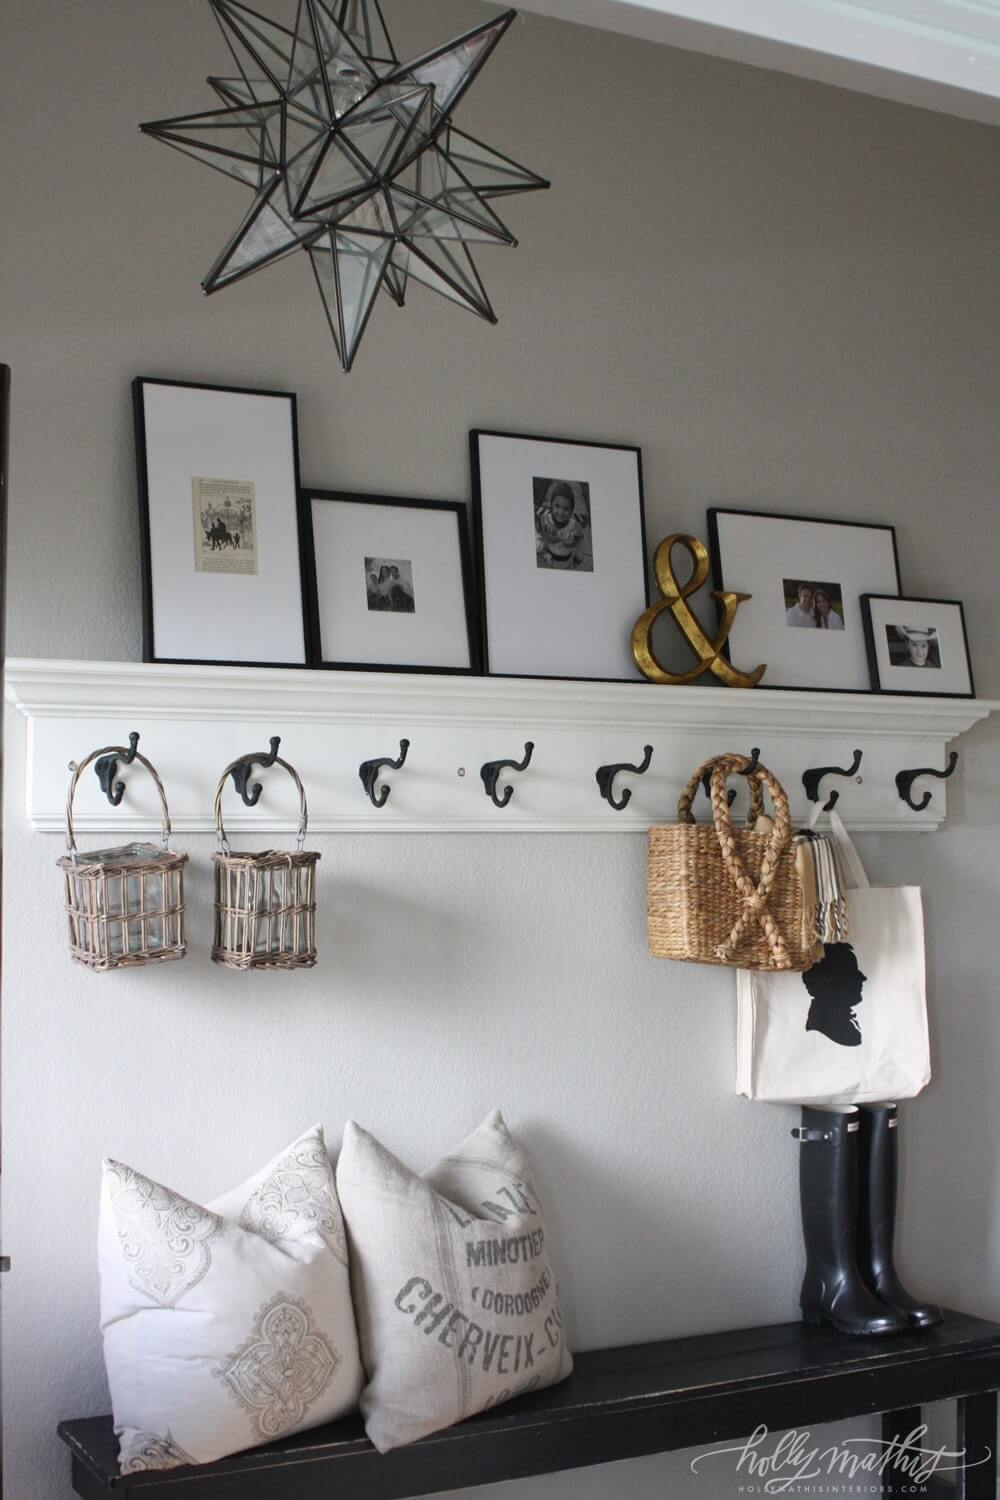 Bright White Wall Shelf with Coat Hooks